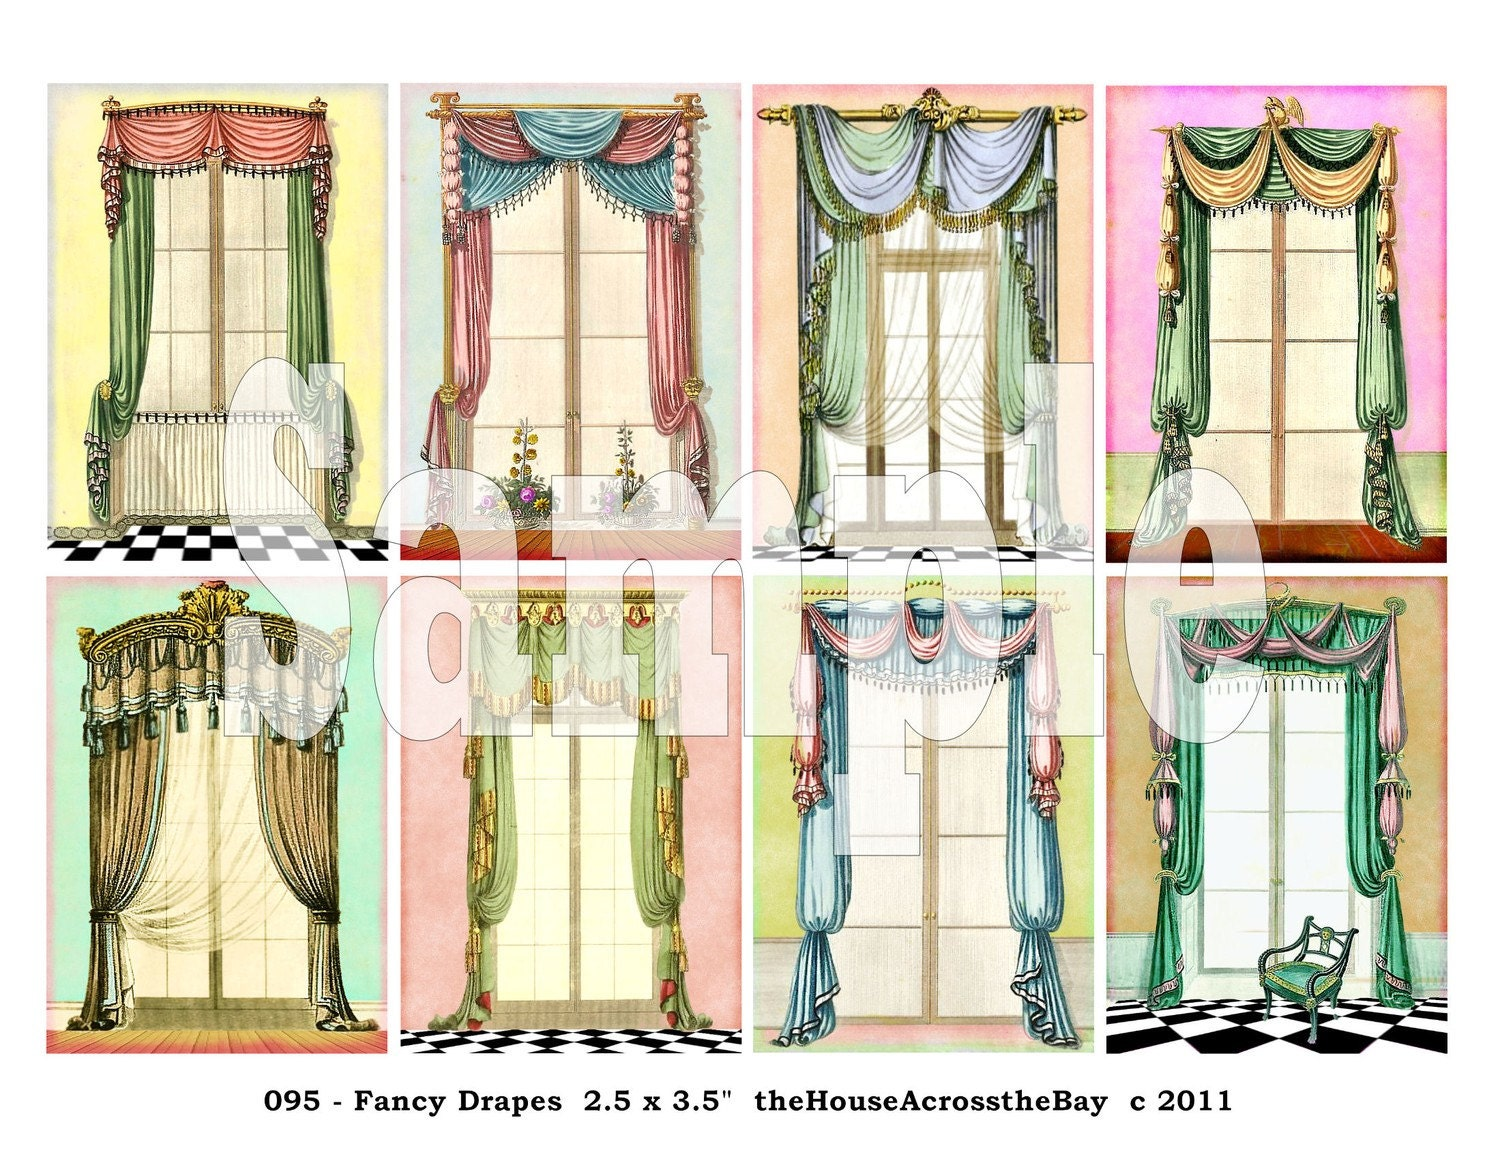 Fancy Drapes ATC Digital Collage Sheet by theHouseAcrosstheBay